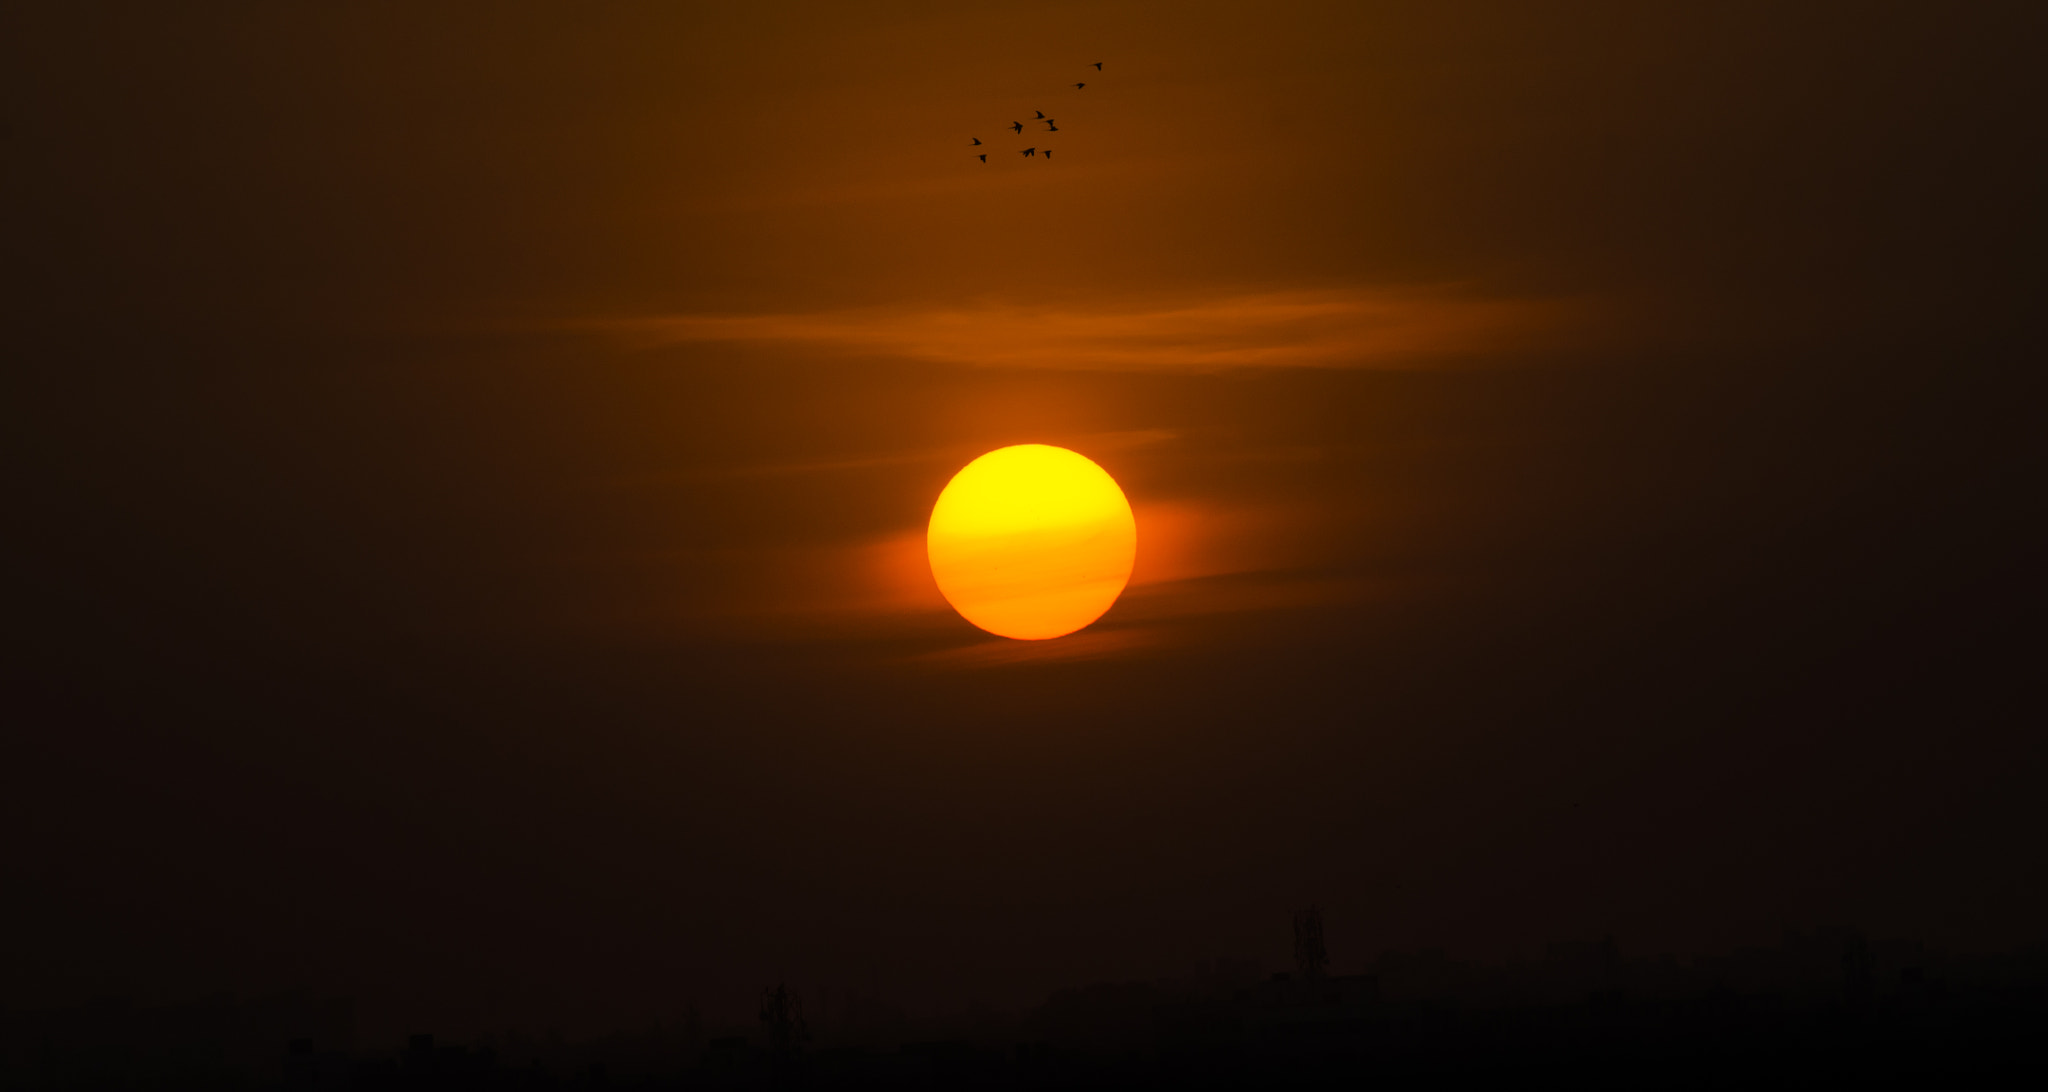 Photograph sunset by arpan choudhury on 500px